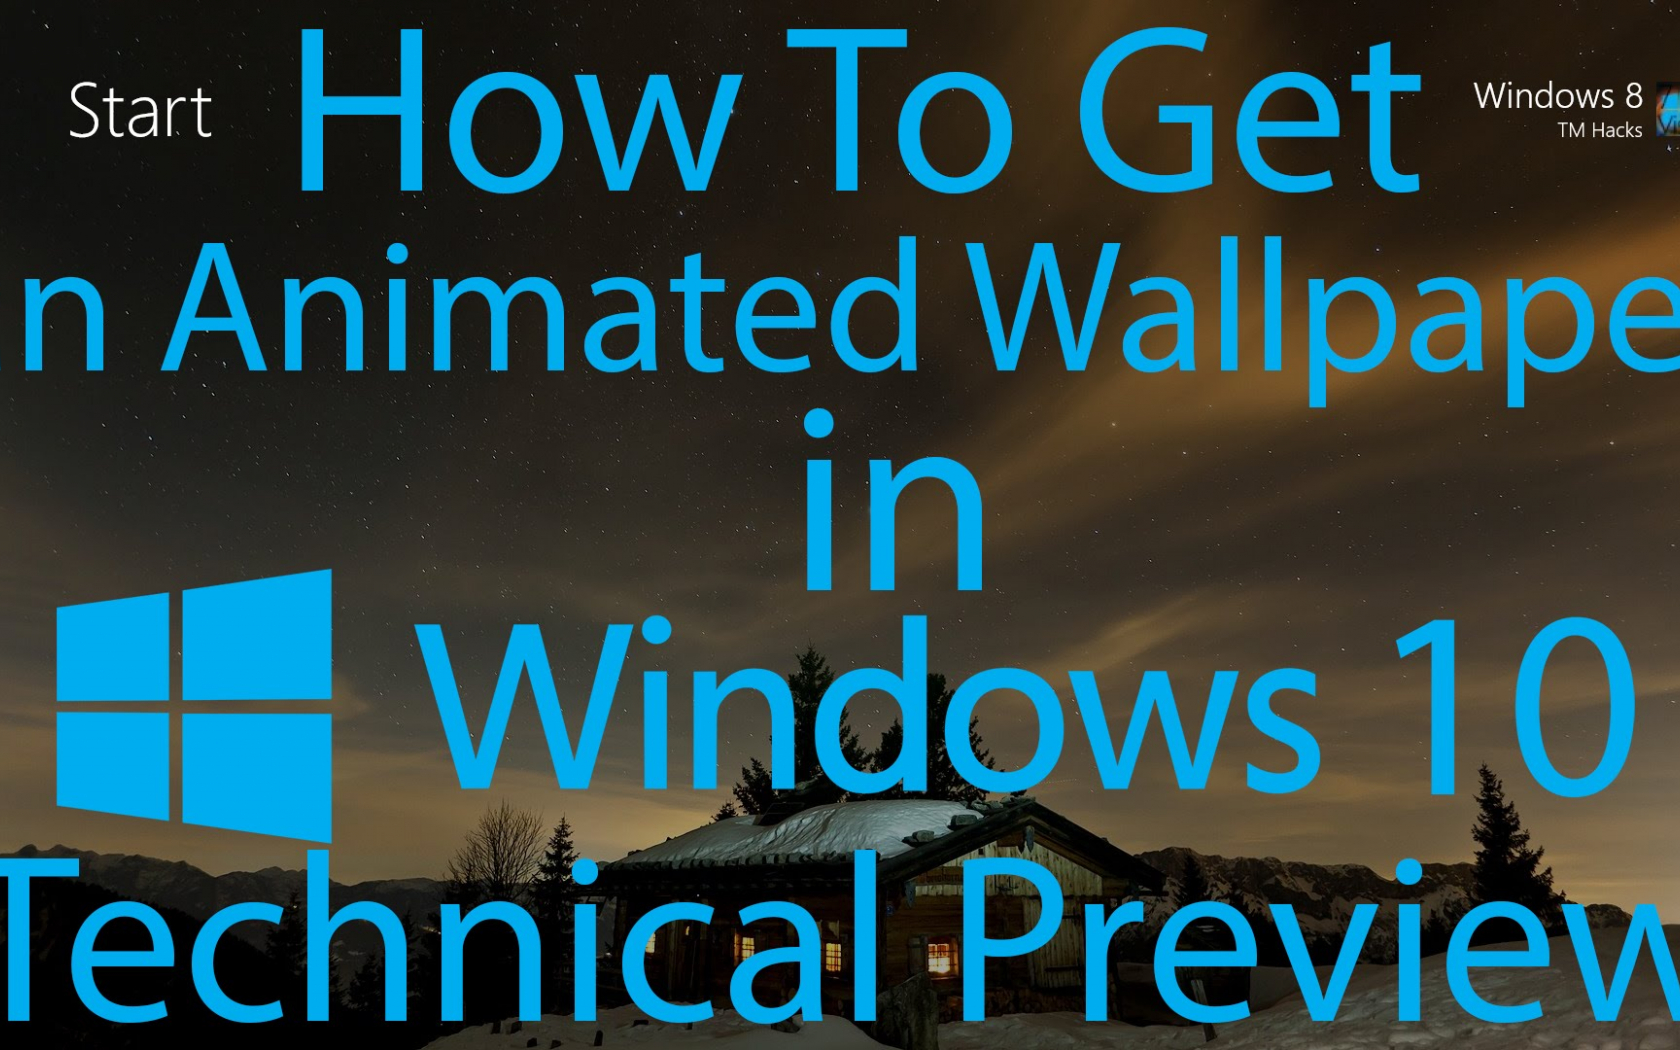 an Animated Wallpaper in Windows 10